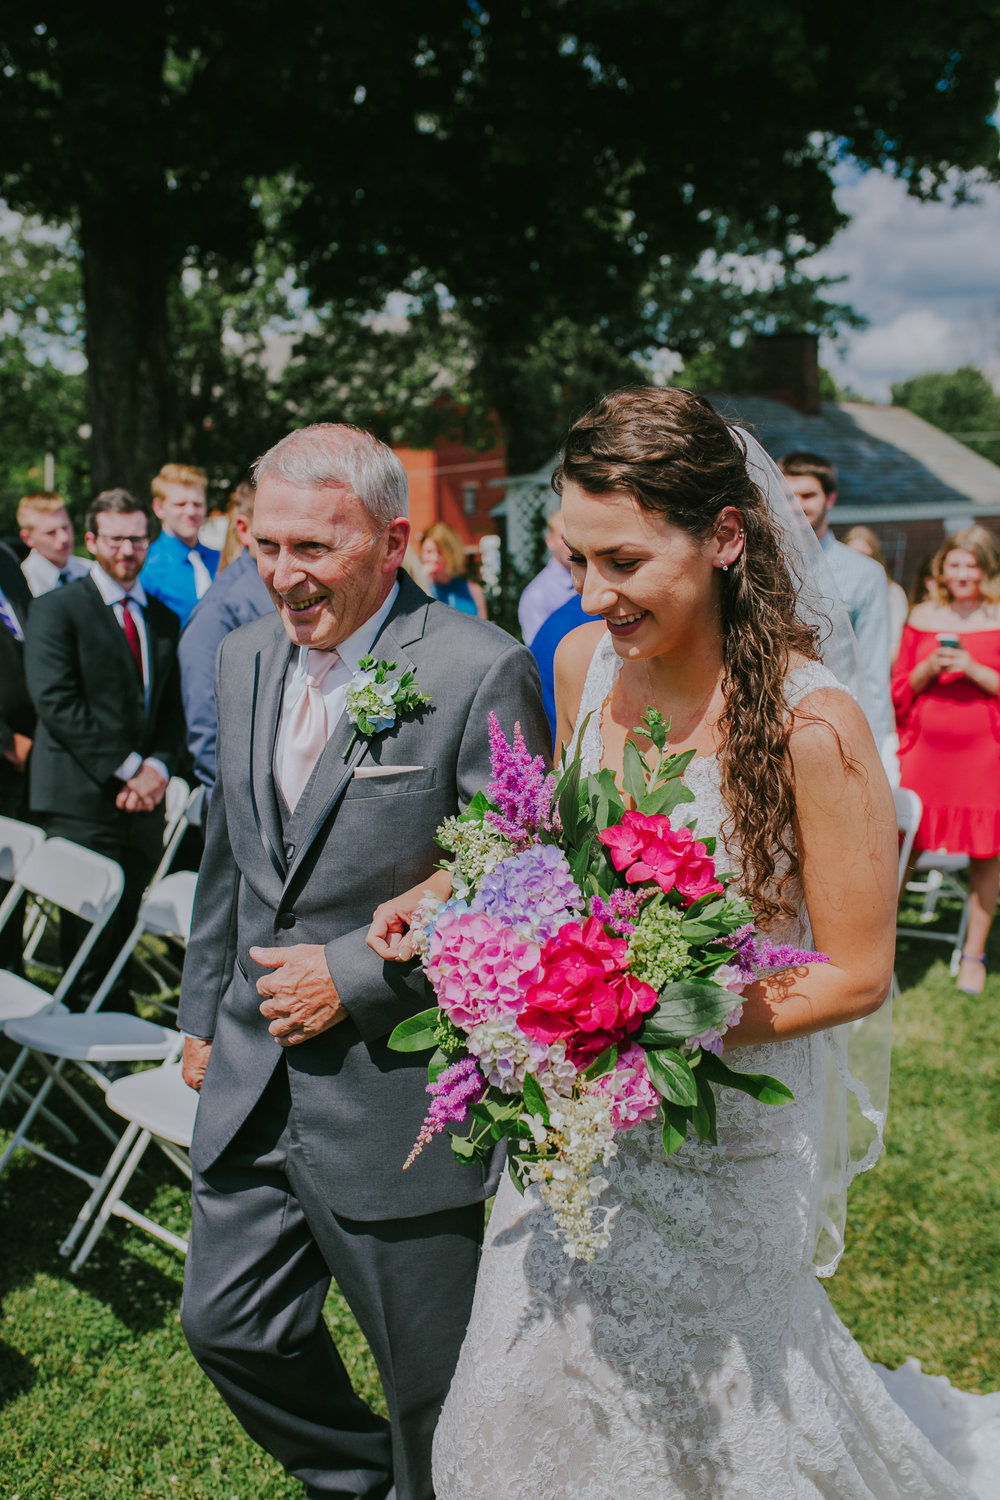 West Overton Wedding41.jpg